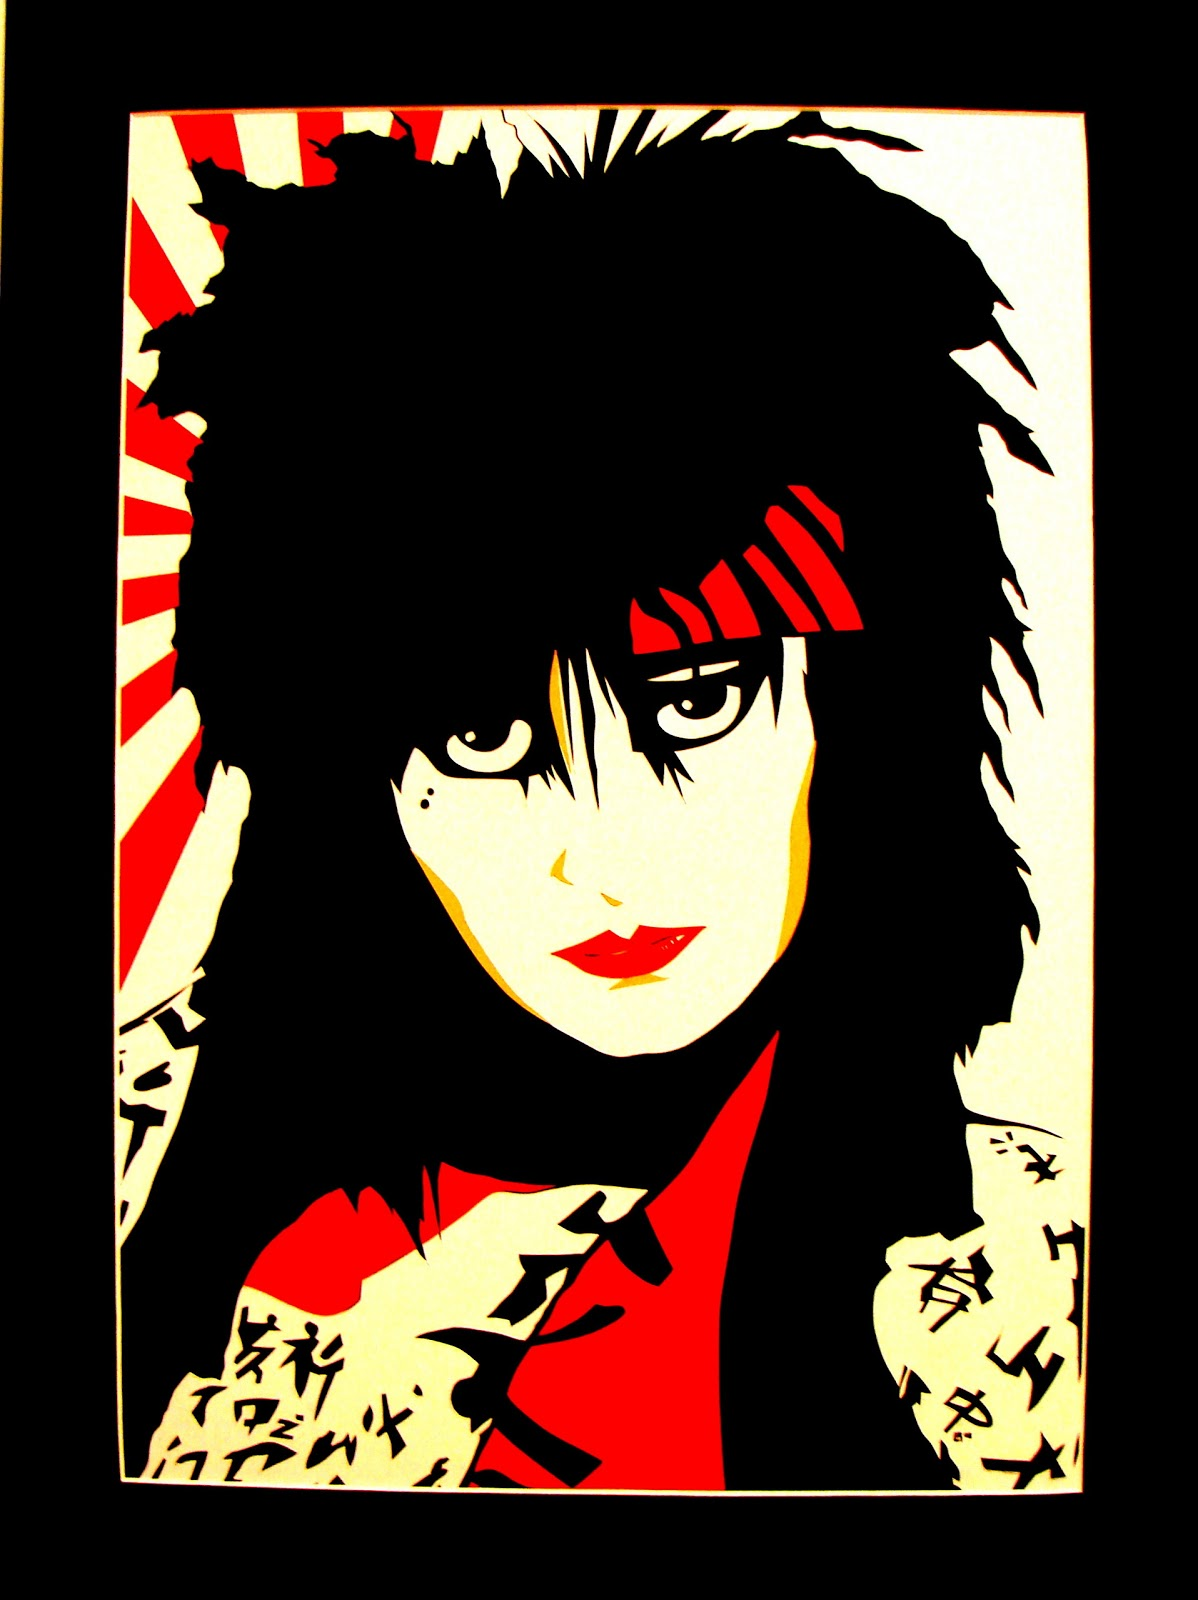 Black Acrylic A Gallery Of Siouxsie Sioux Fan Art